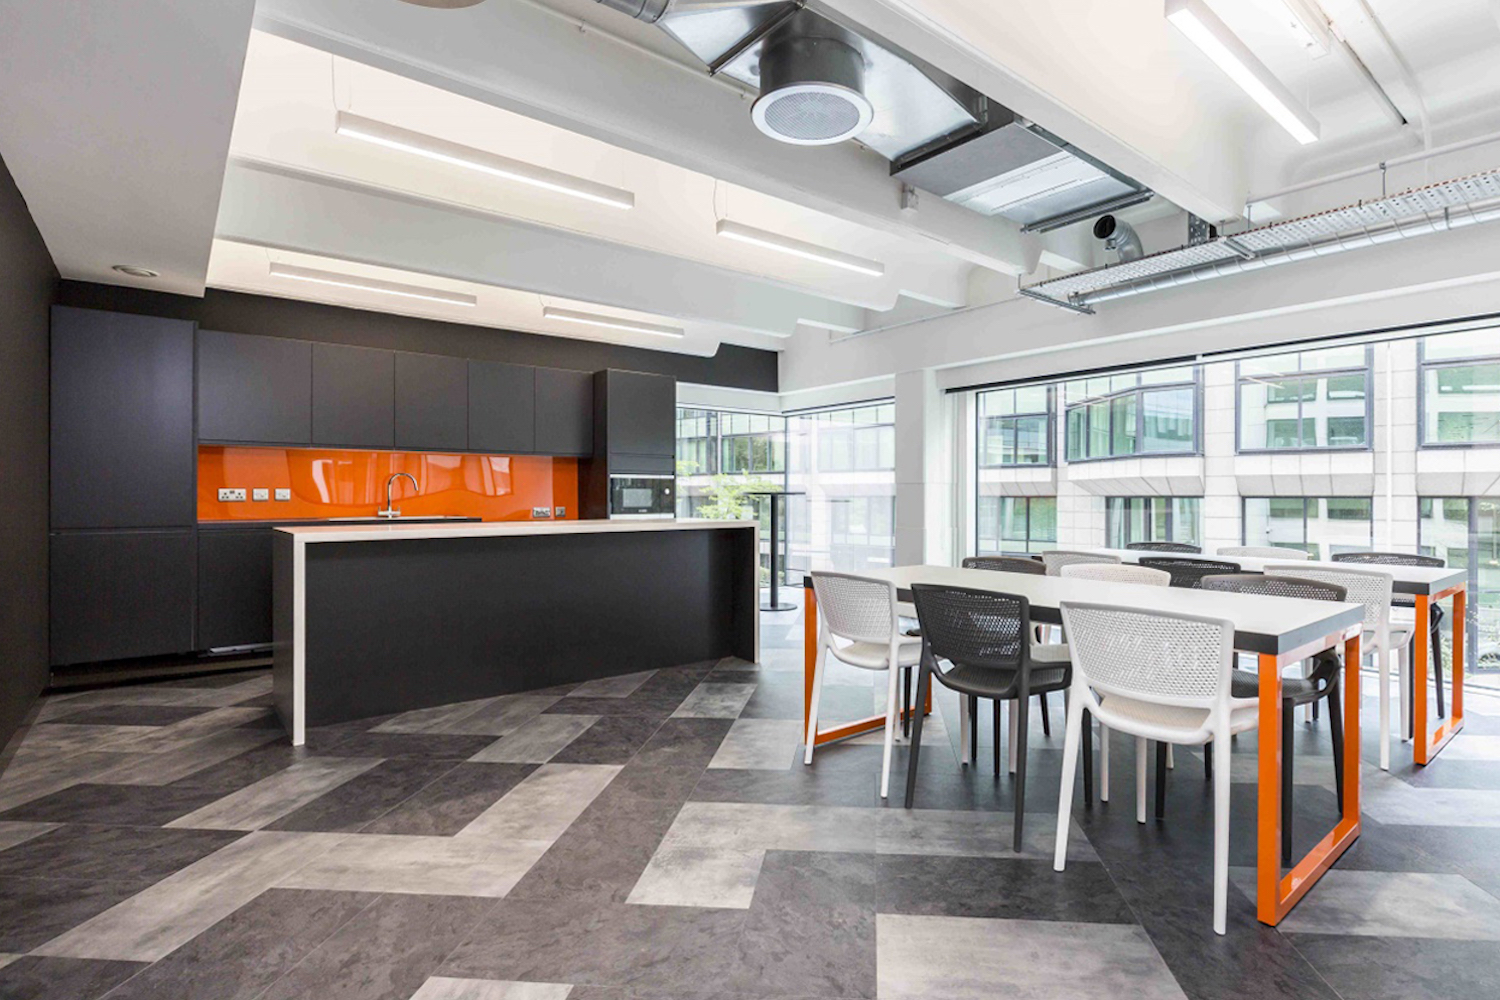 Different pattern of vinyl tiles on floor advantages of vinyl for commercial spaces